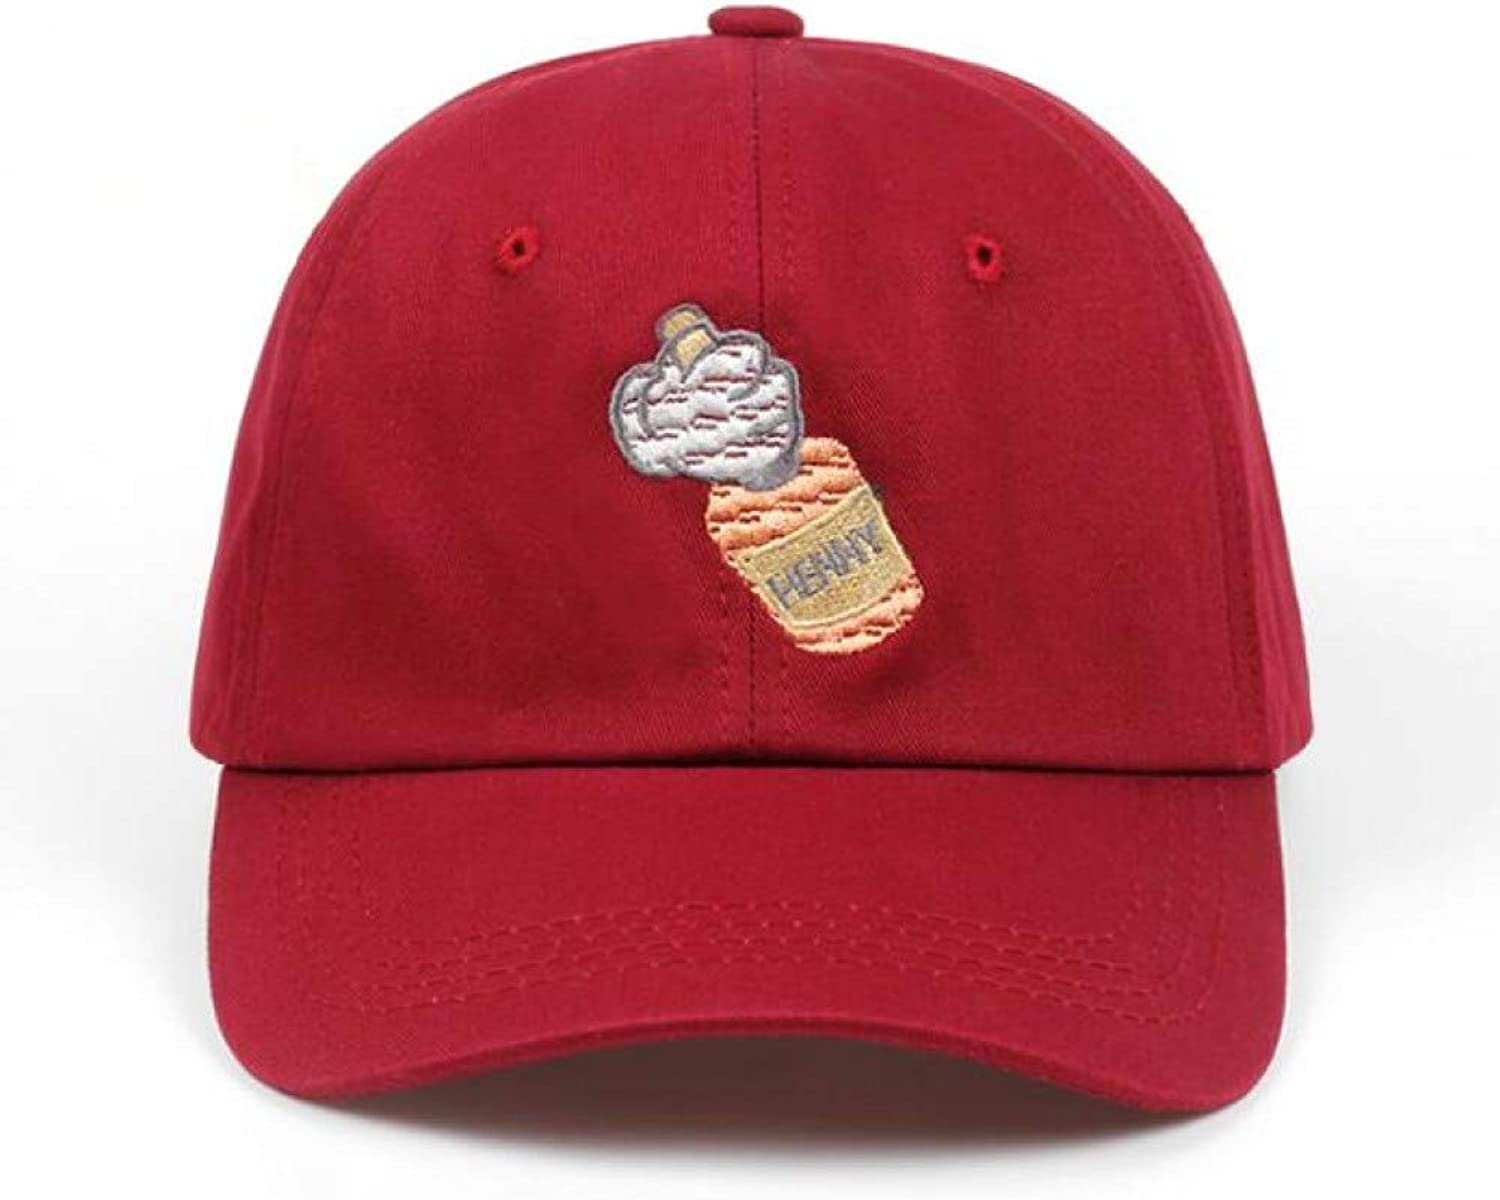 AZSXDC Hat Baseball Cap Embroidery for Men Women Bottle Cosmonaut Cap Cotton Hip Hop Bone Cotton